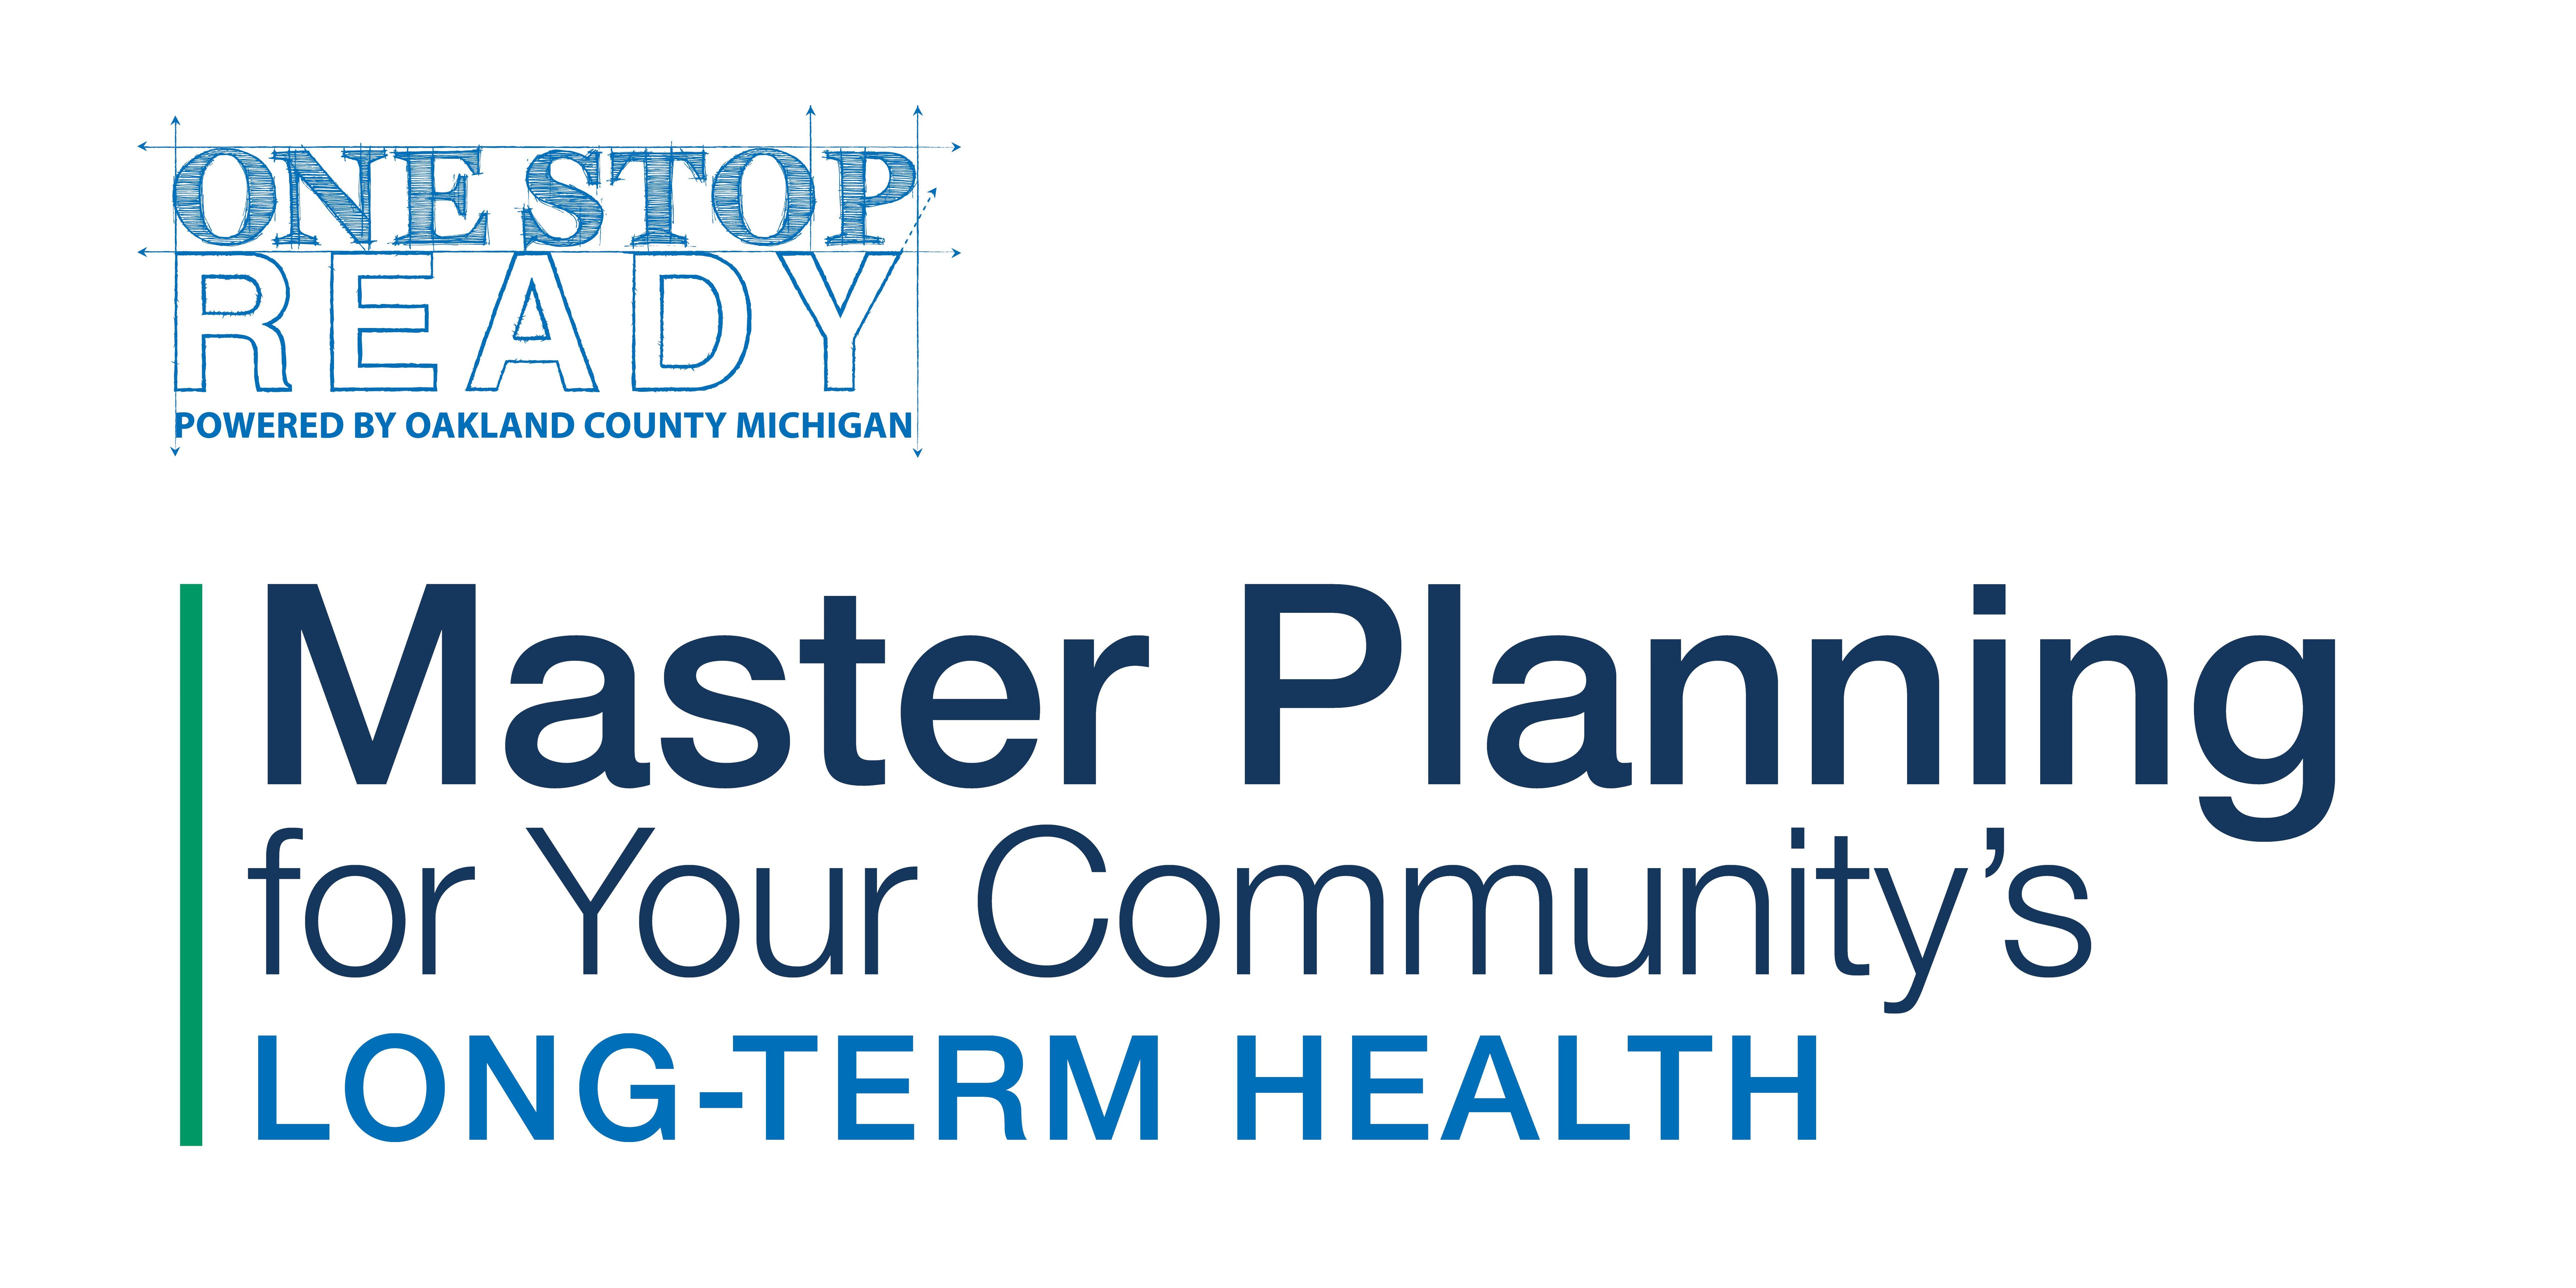 One Stop Ready  Master Planning for Your Communitys Long-Term Health